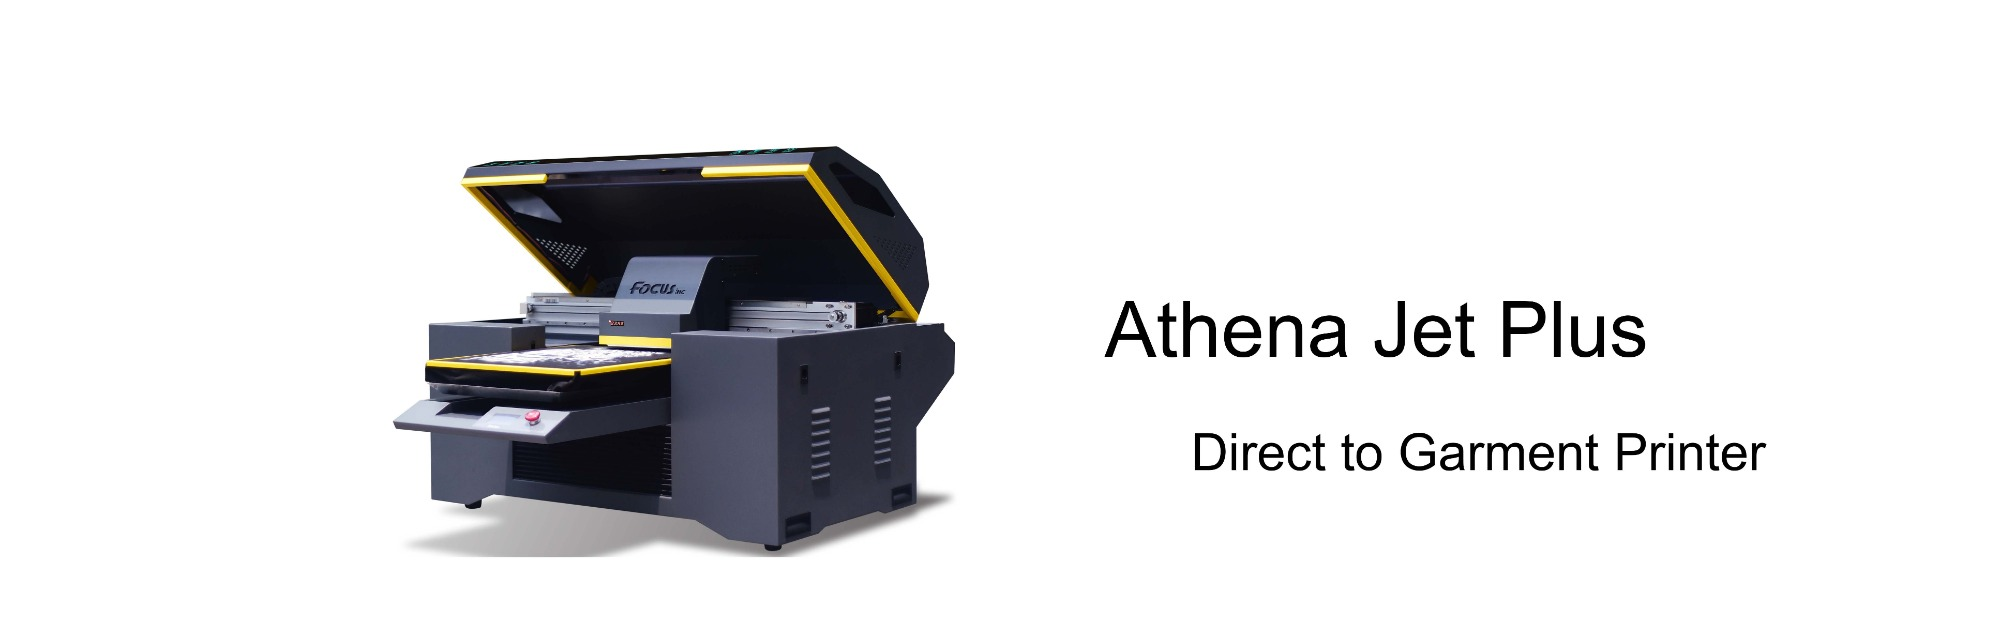 Athena-Jet Plus T-shirt Direct to garment printer